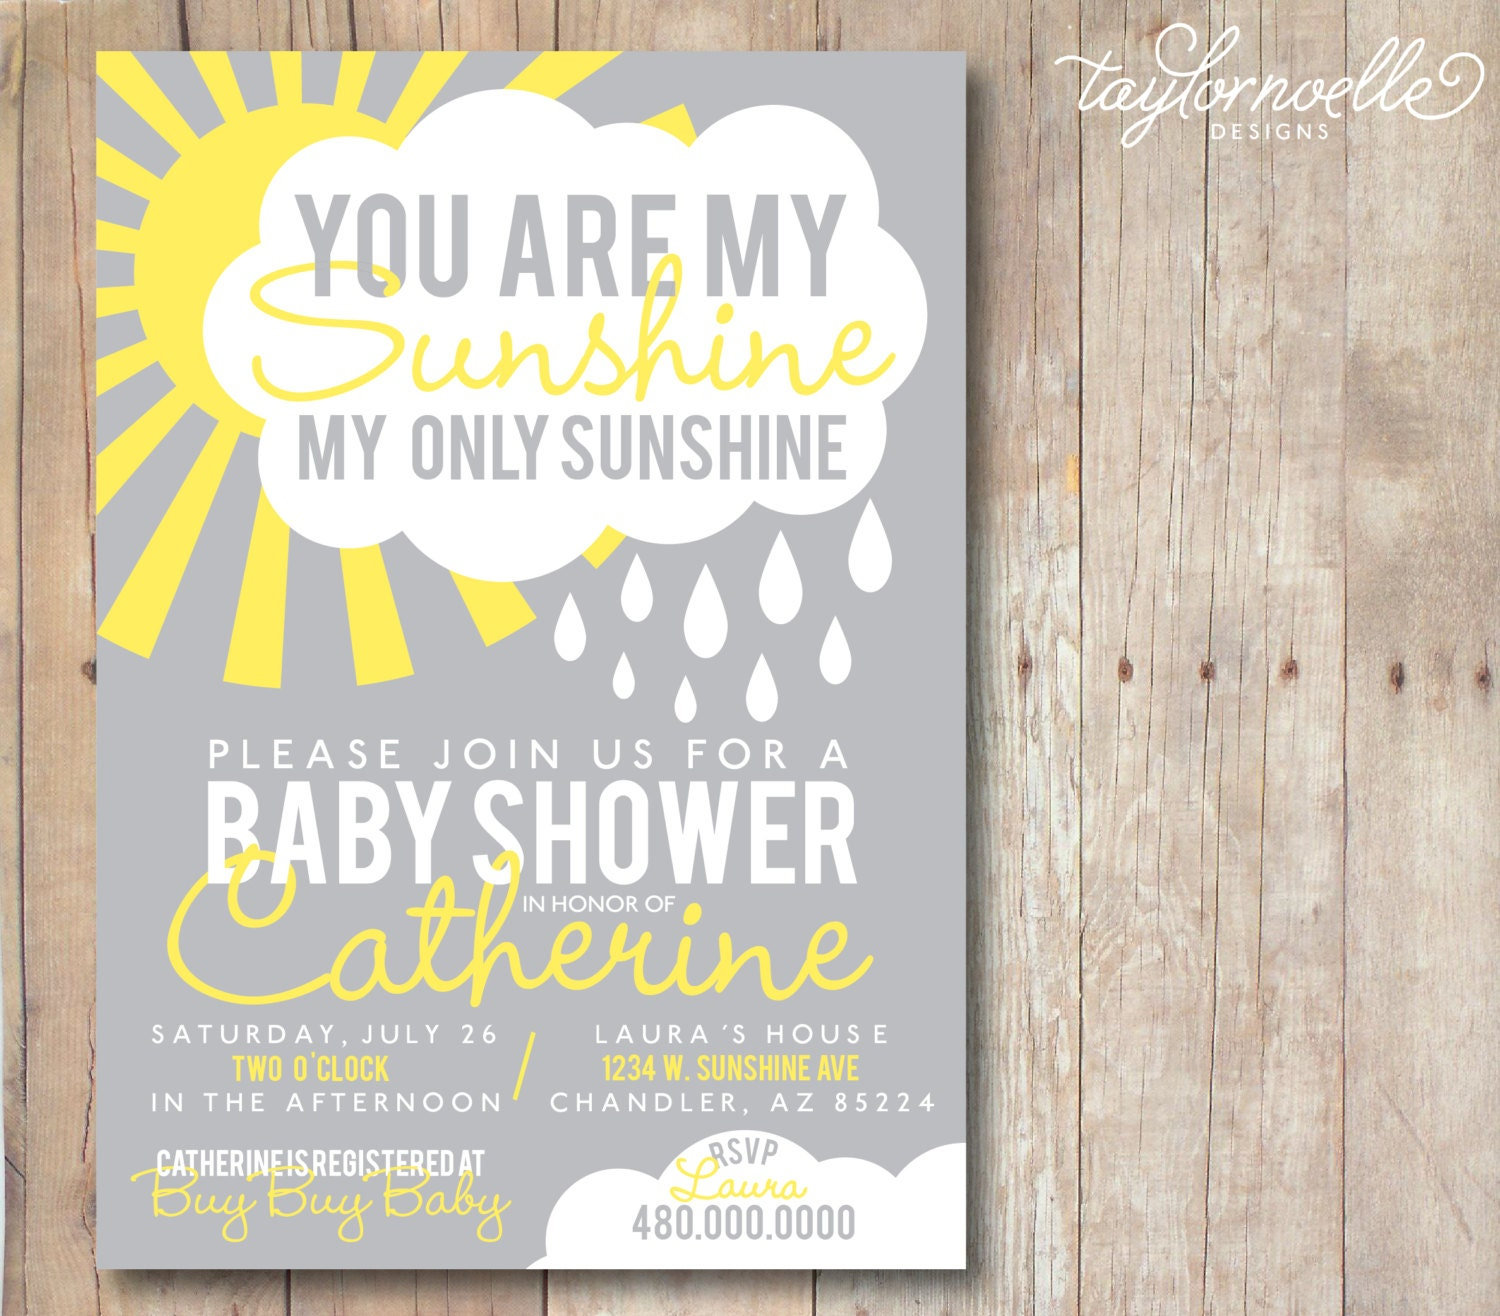 printable 5x7 you are my sunshine baby shower invitation